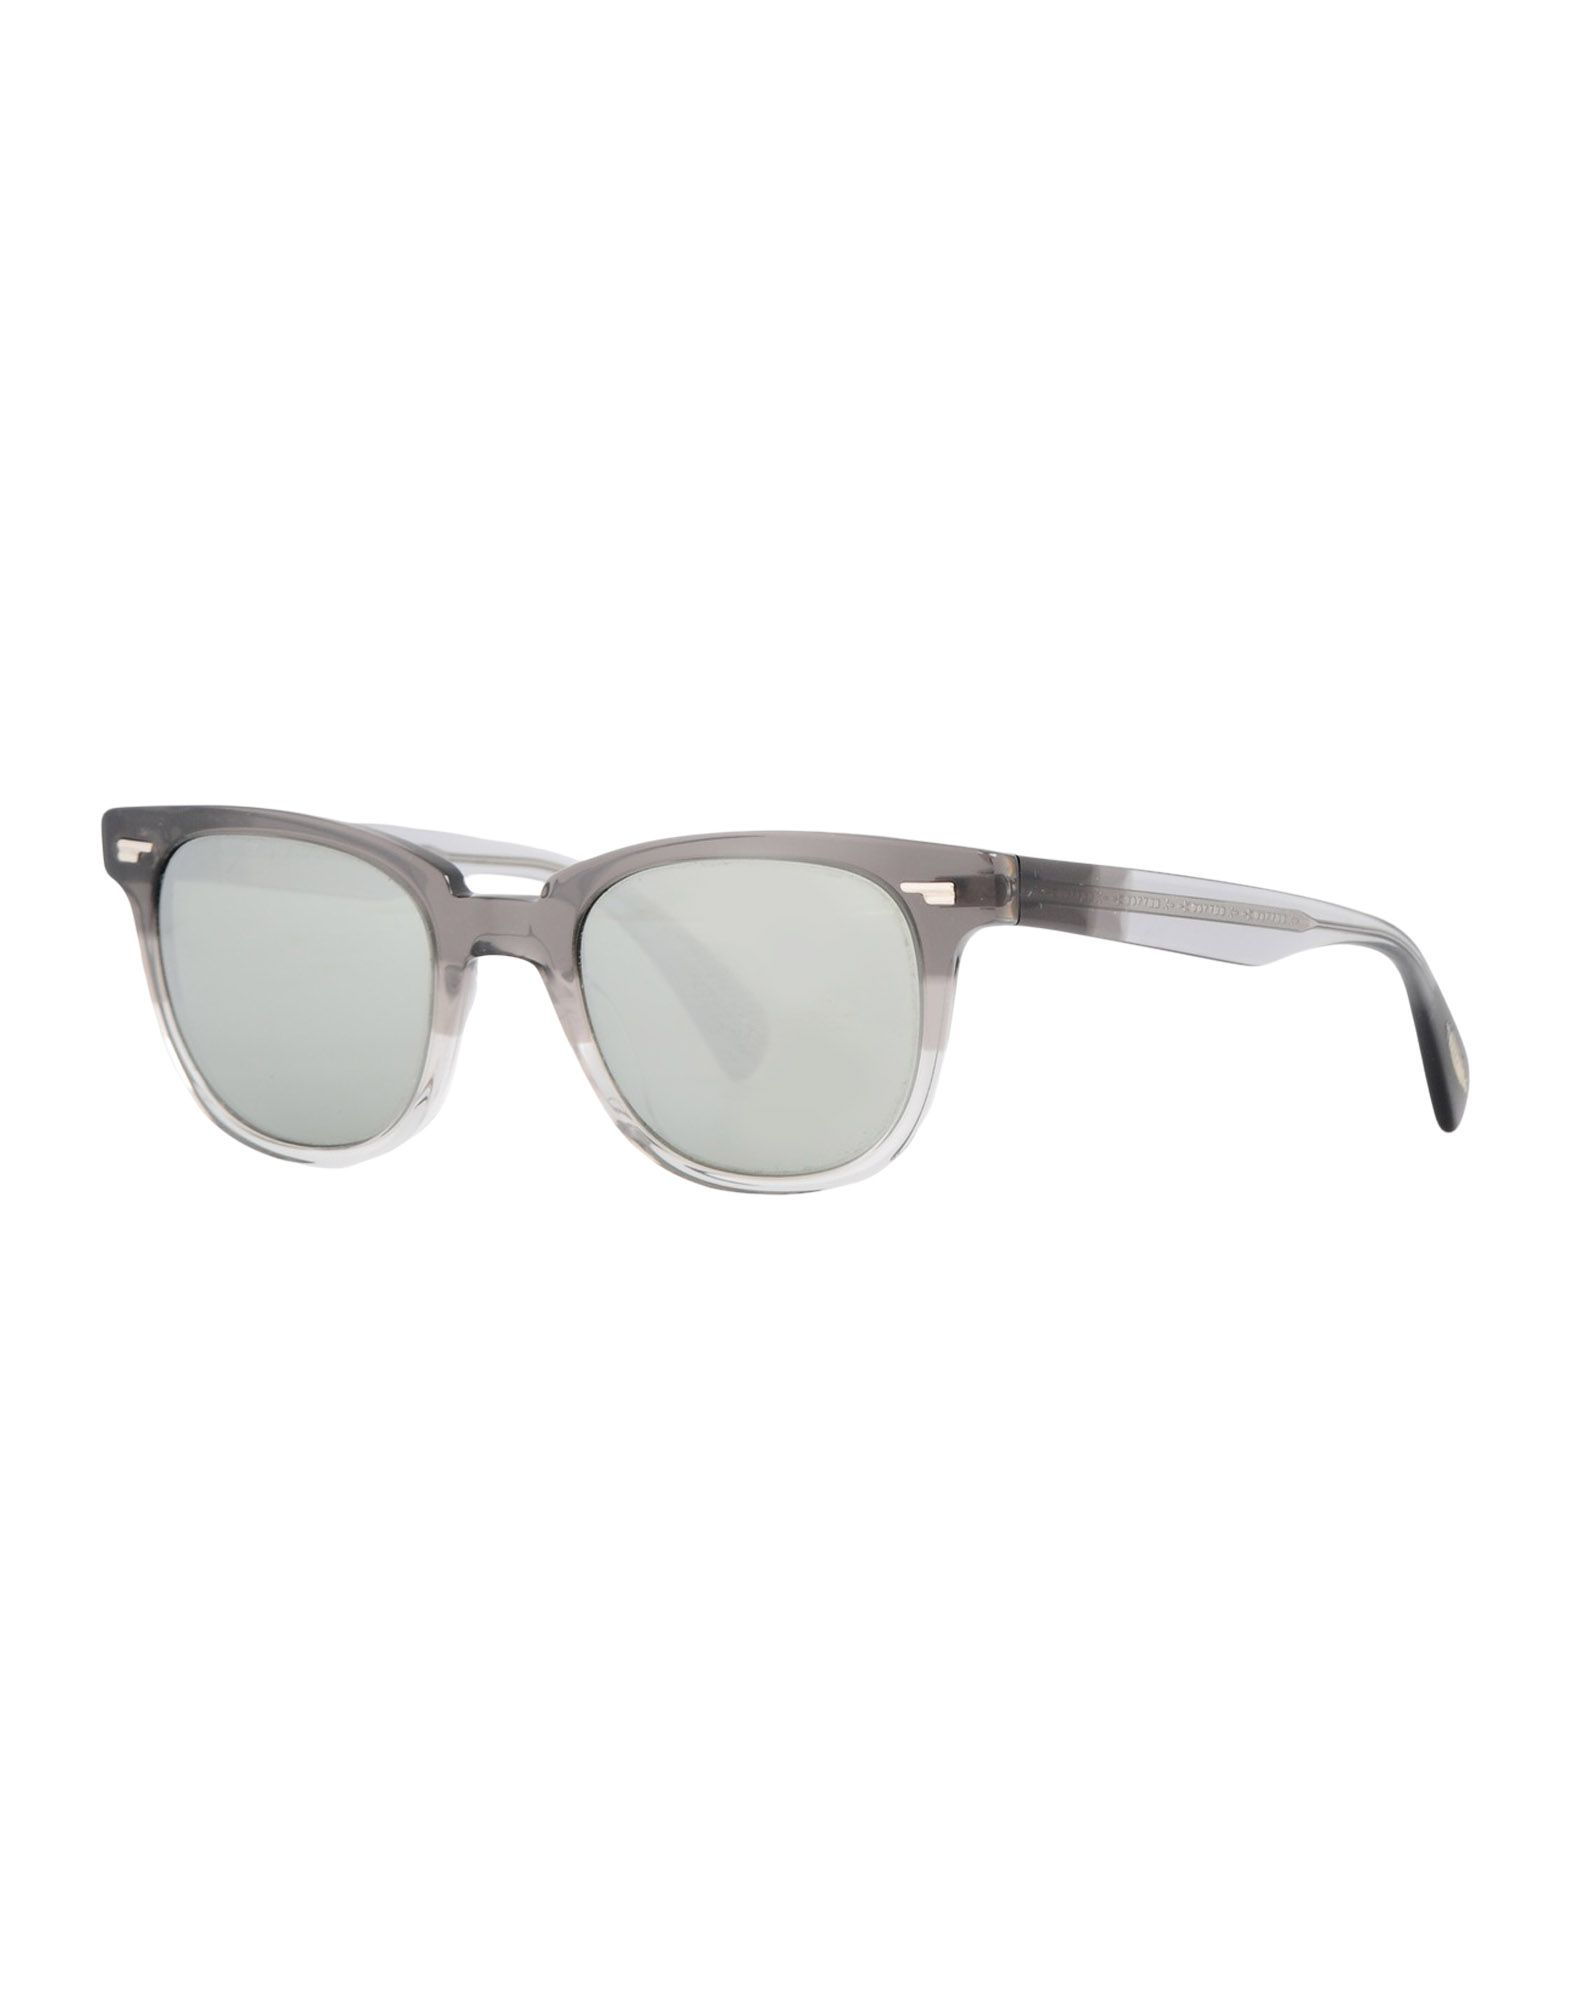 OLIVER PEOPLES Солнечные очки